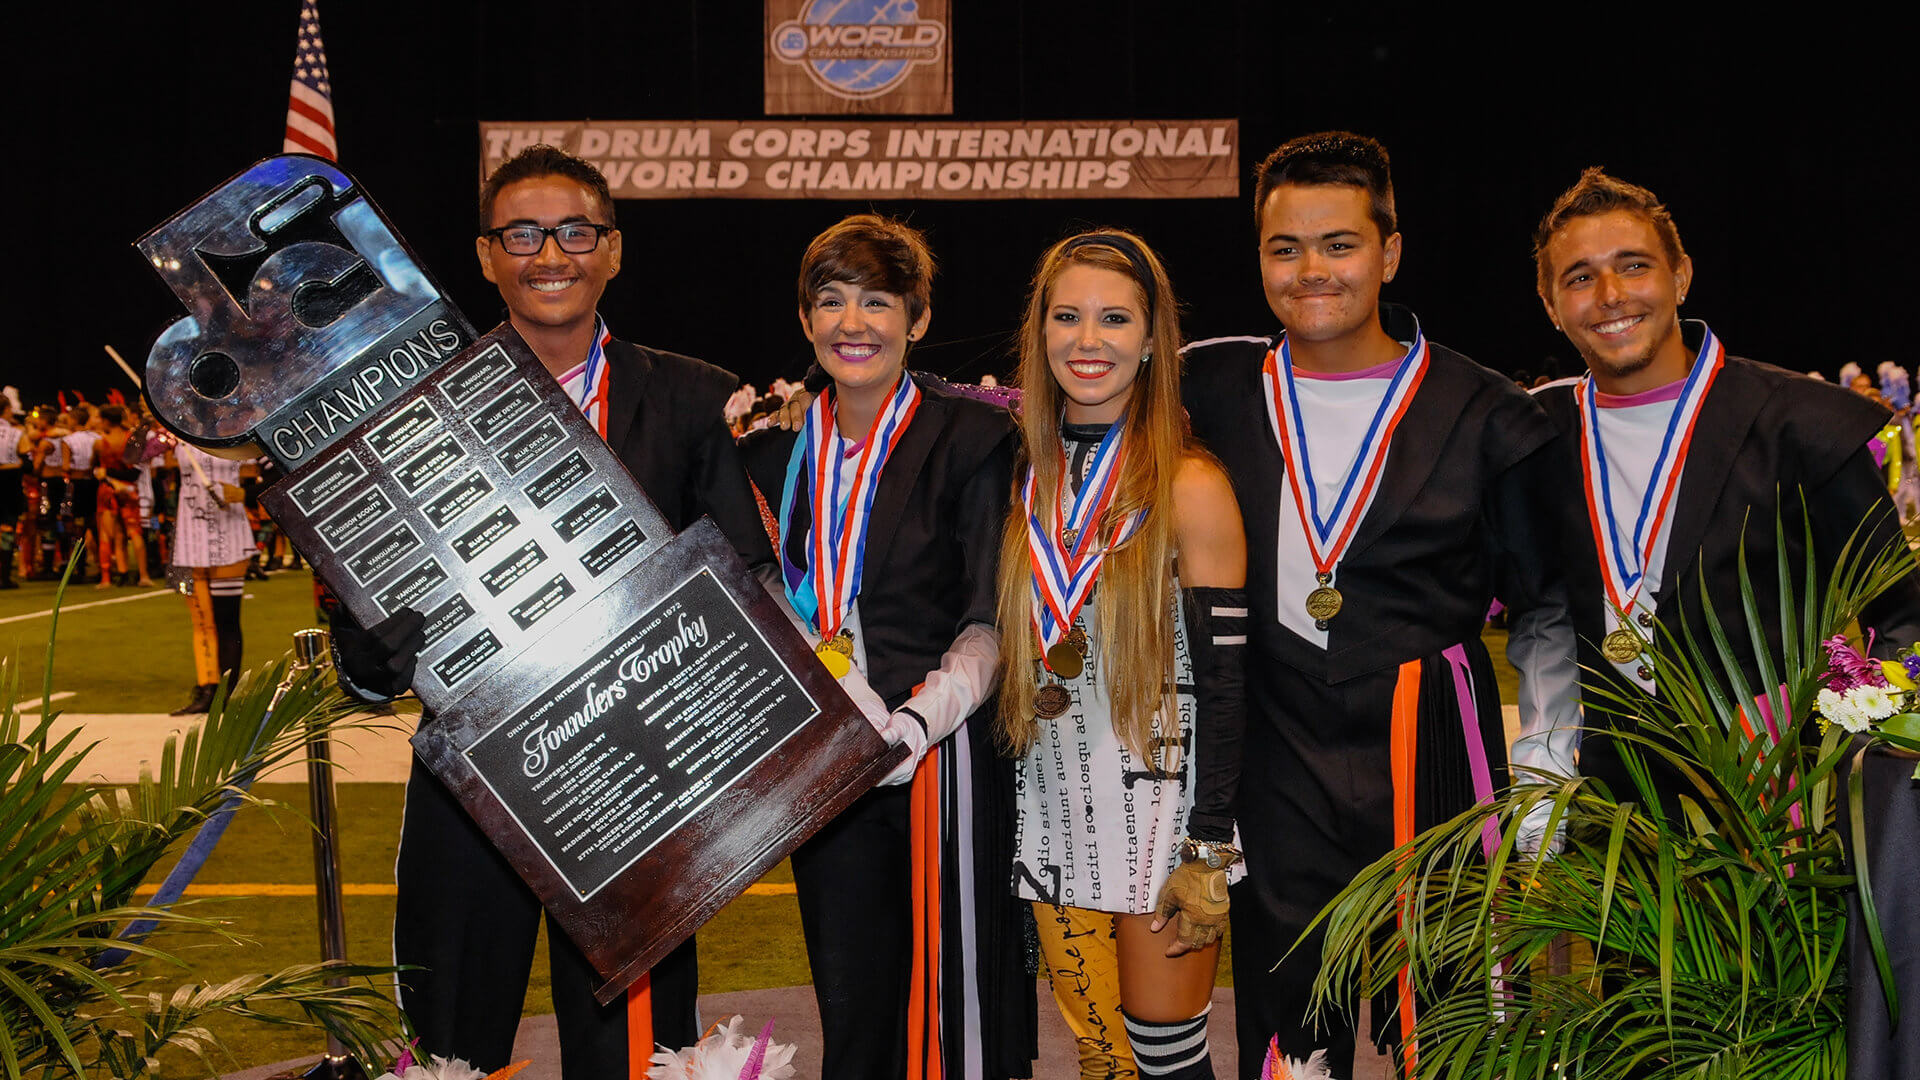 Top headlines of the 2015 DCI World Championships